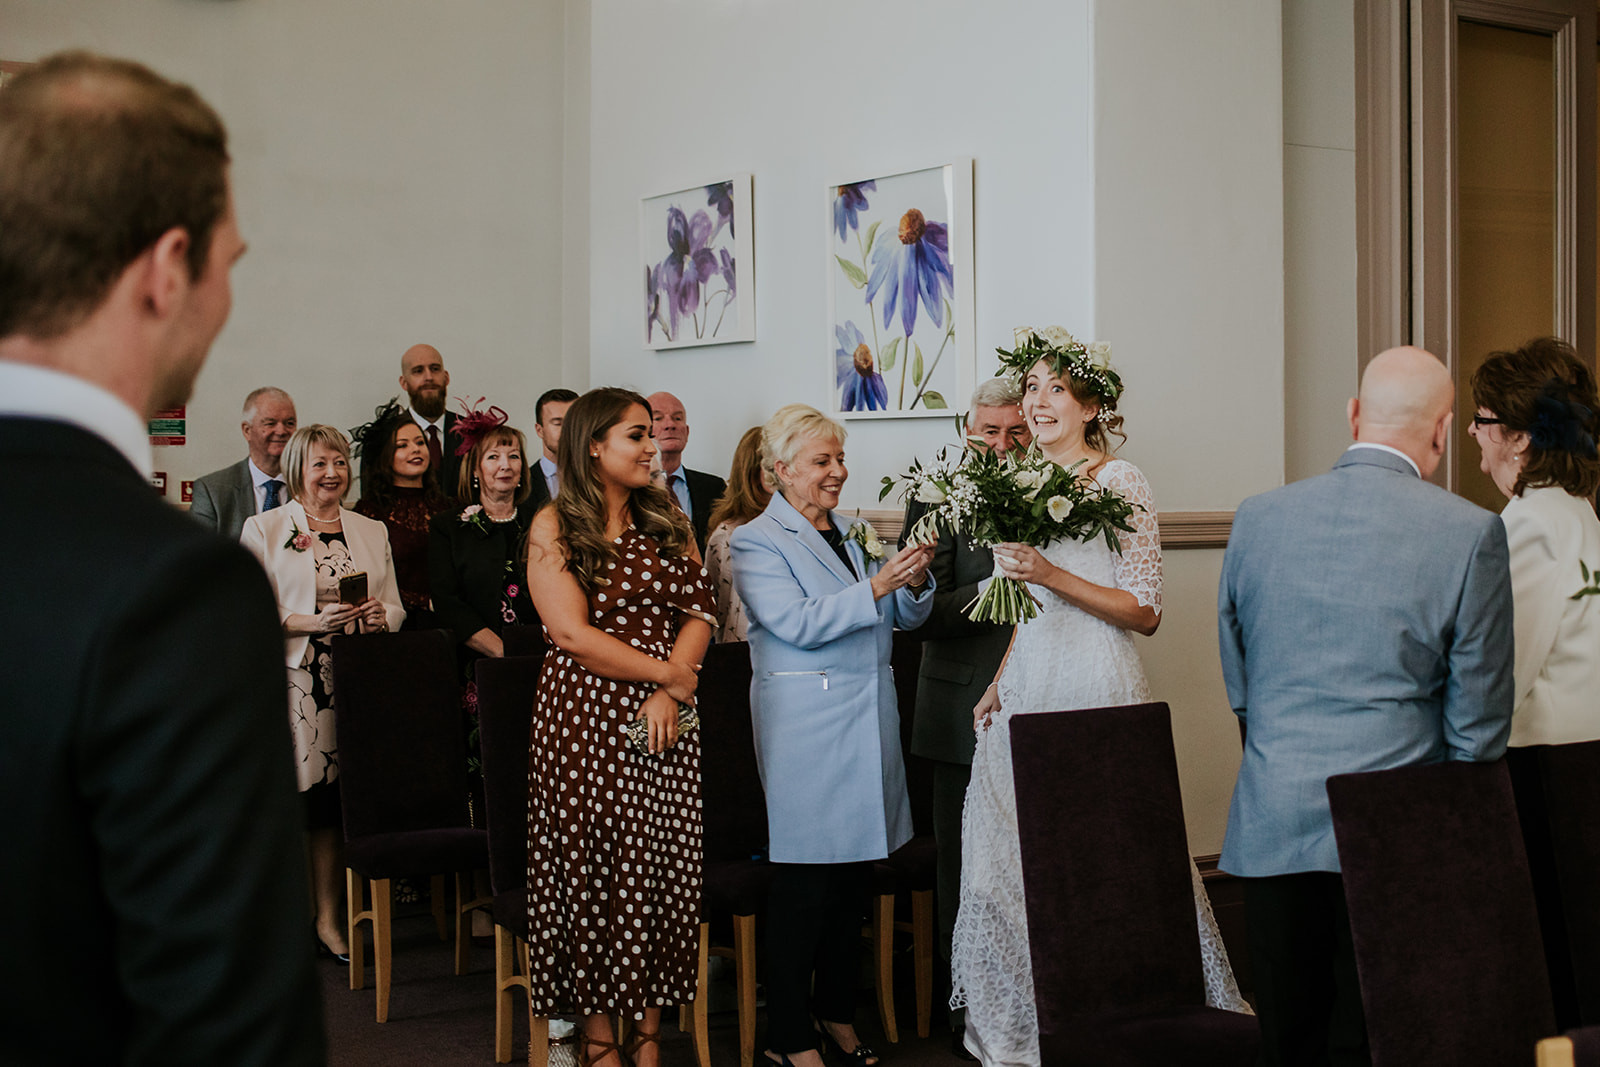 bride walking in, smiling at the groom, all the guests watching and smiling